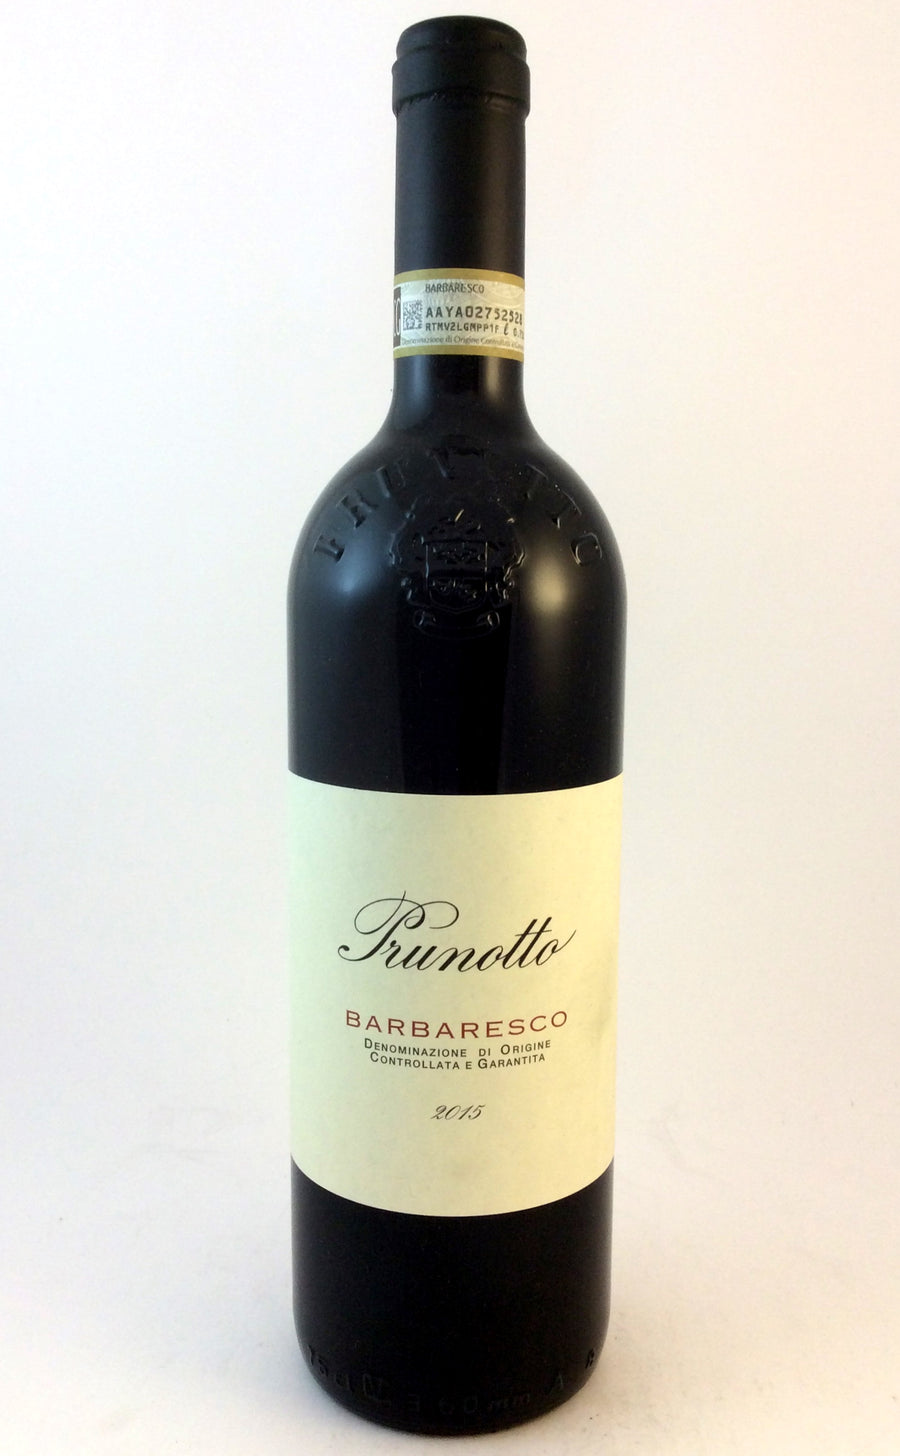 Prunotto Barbaresco DOCG